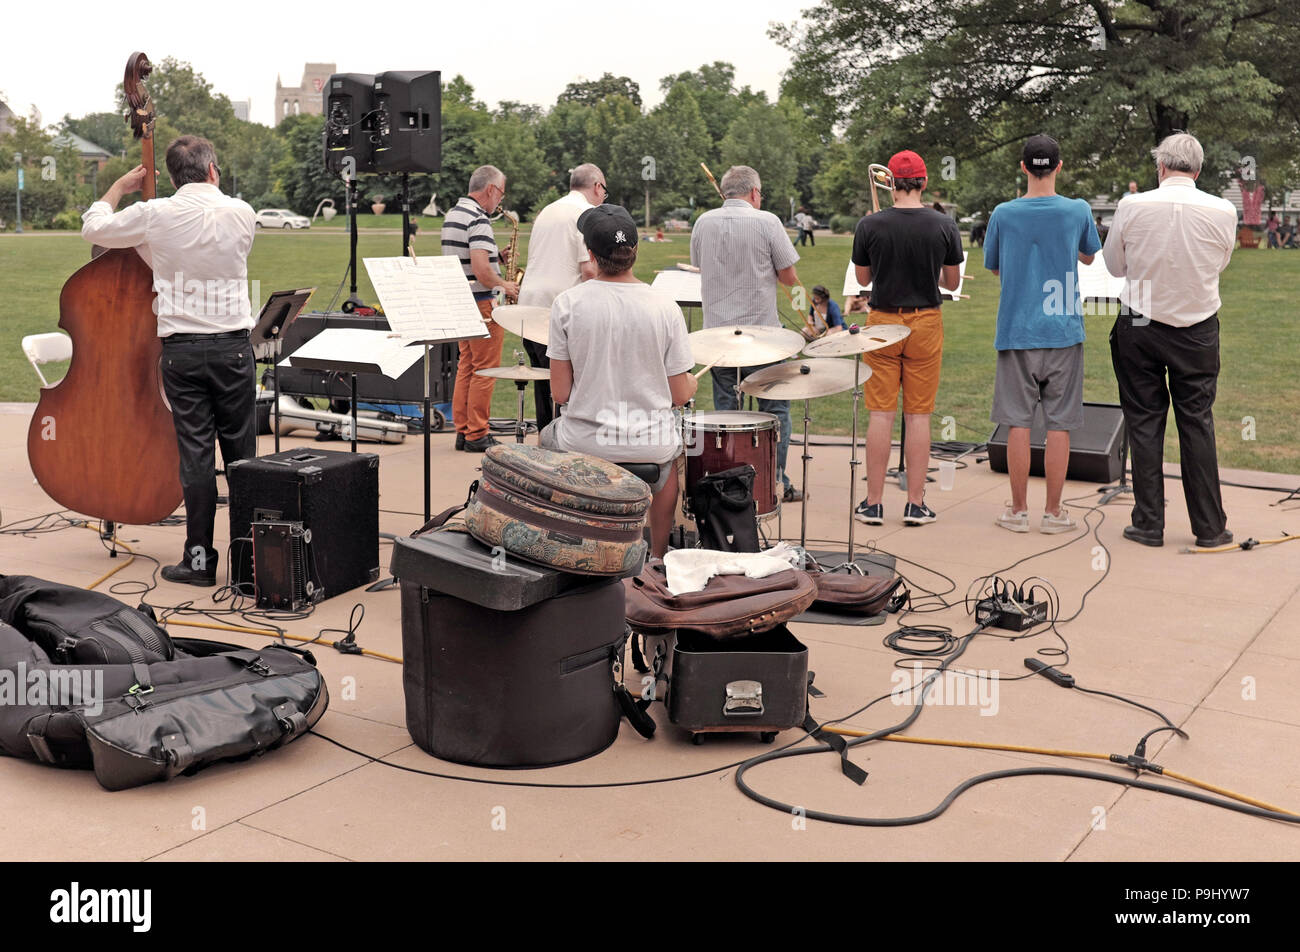 Jazz band plays in Wade Park in University Circle in Cleveland, Ohio, USA. - Stock Image